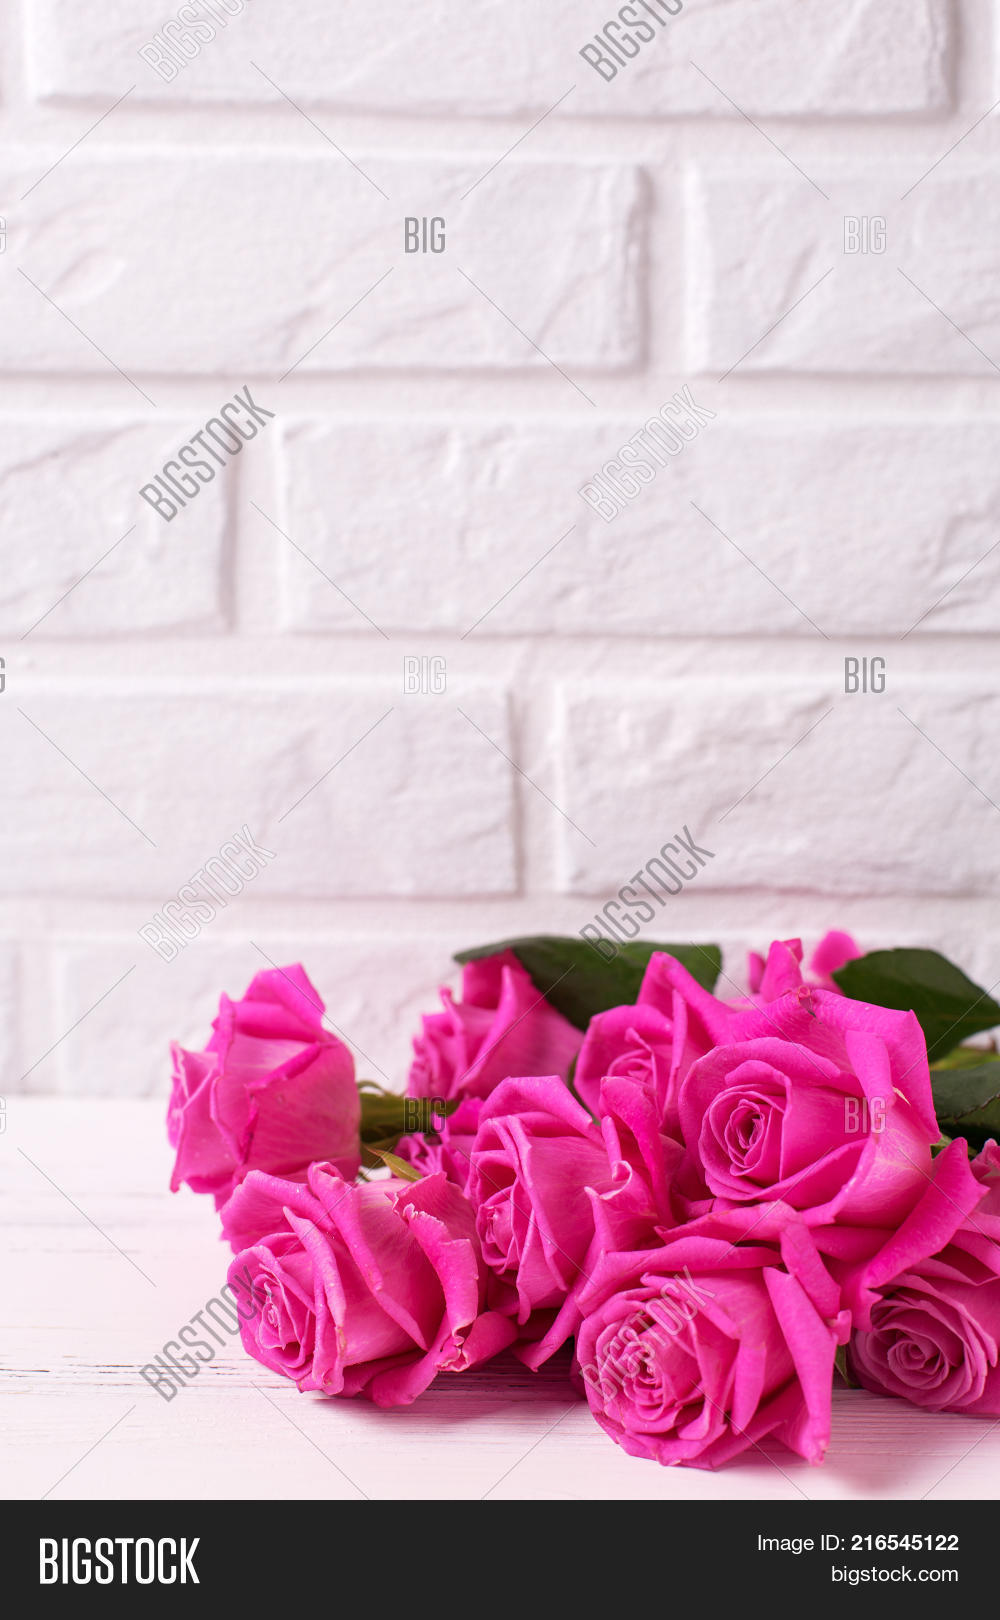 Bunch Pink Roses Image Photo Free Trial Bigstock